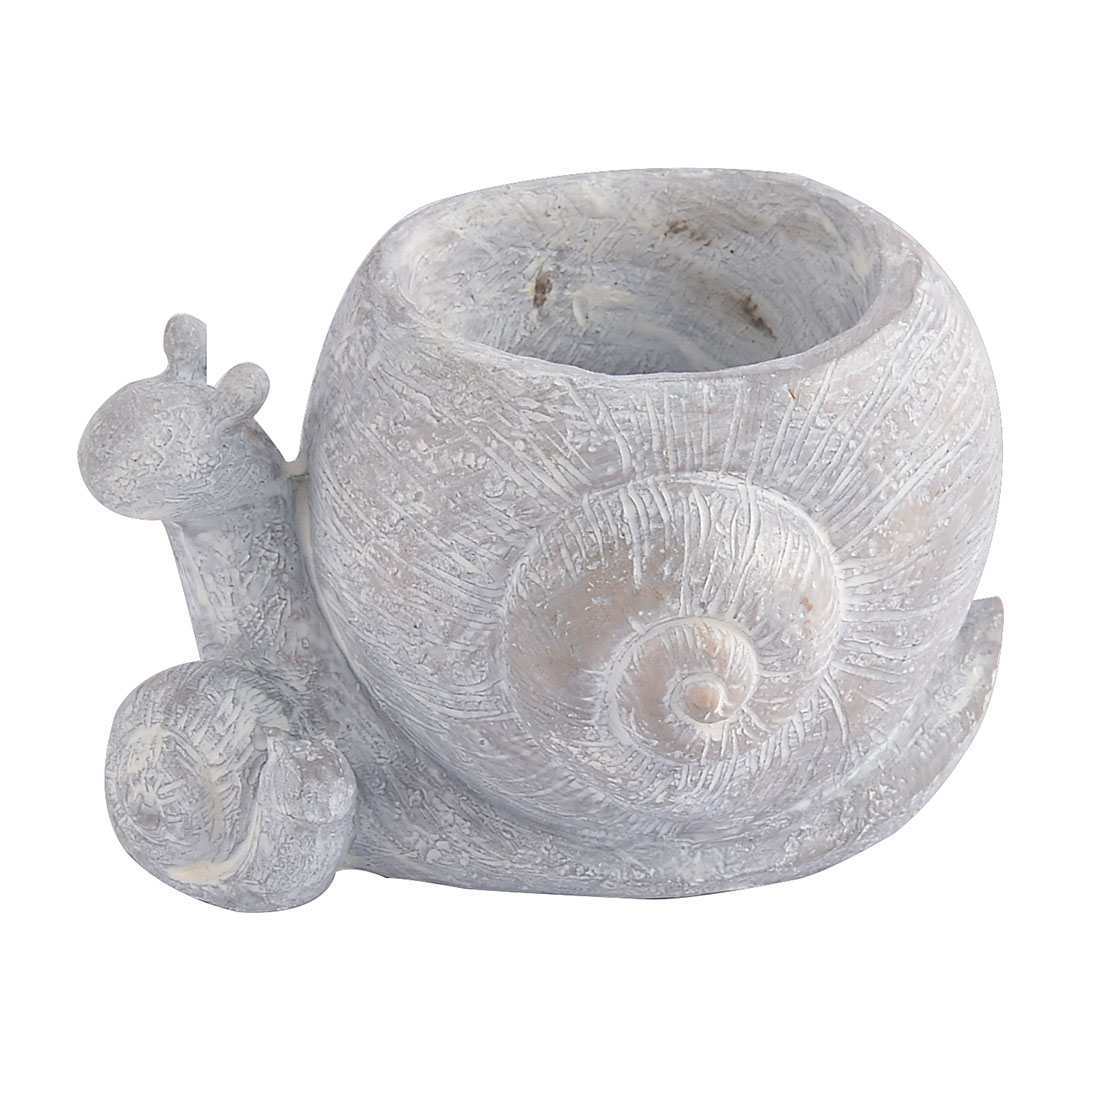 Household Office Resin Snail Shaped Aloes Cactus Flower Pot Light Gray